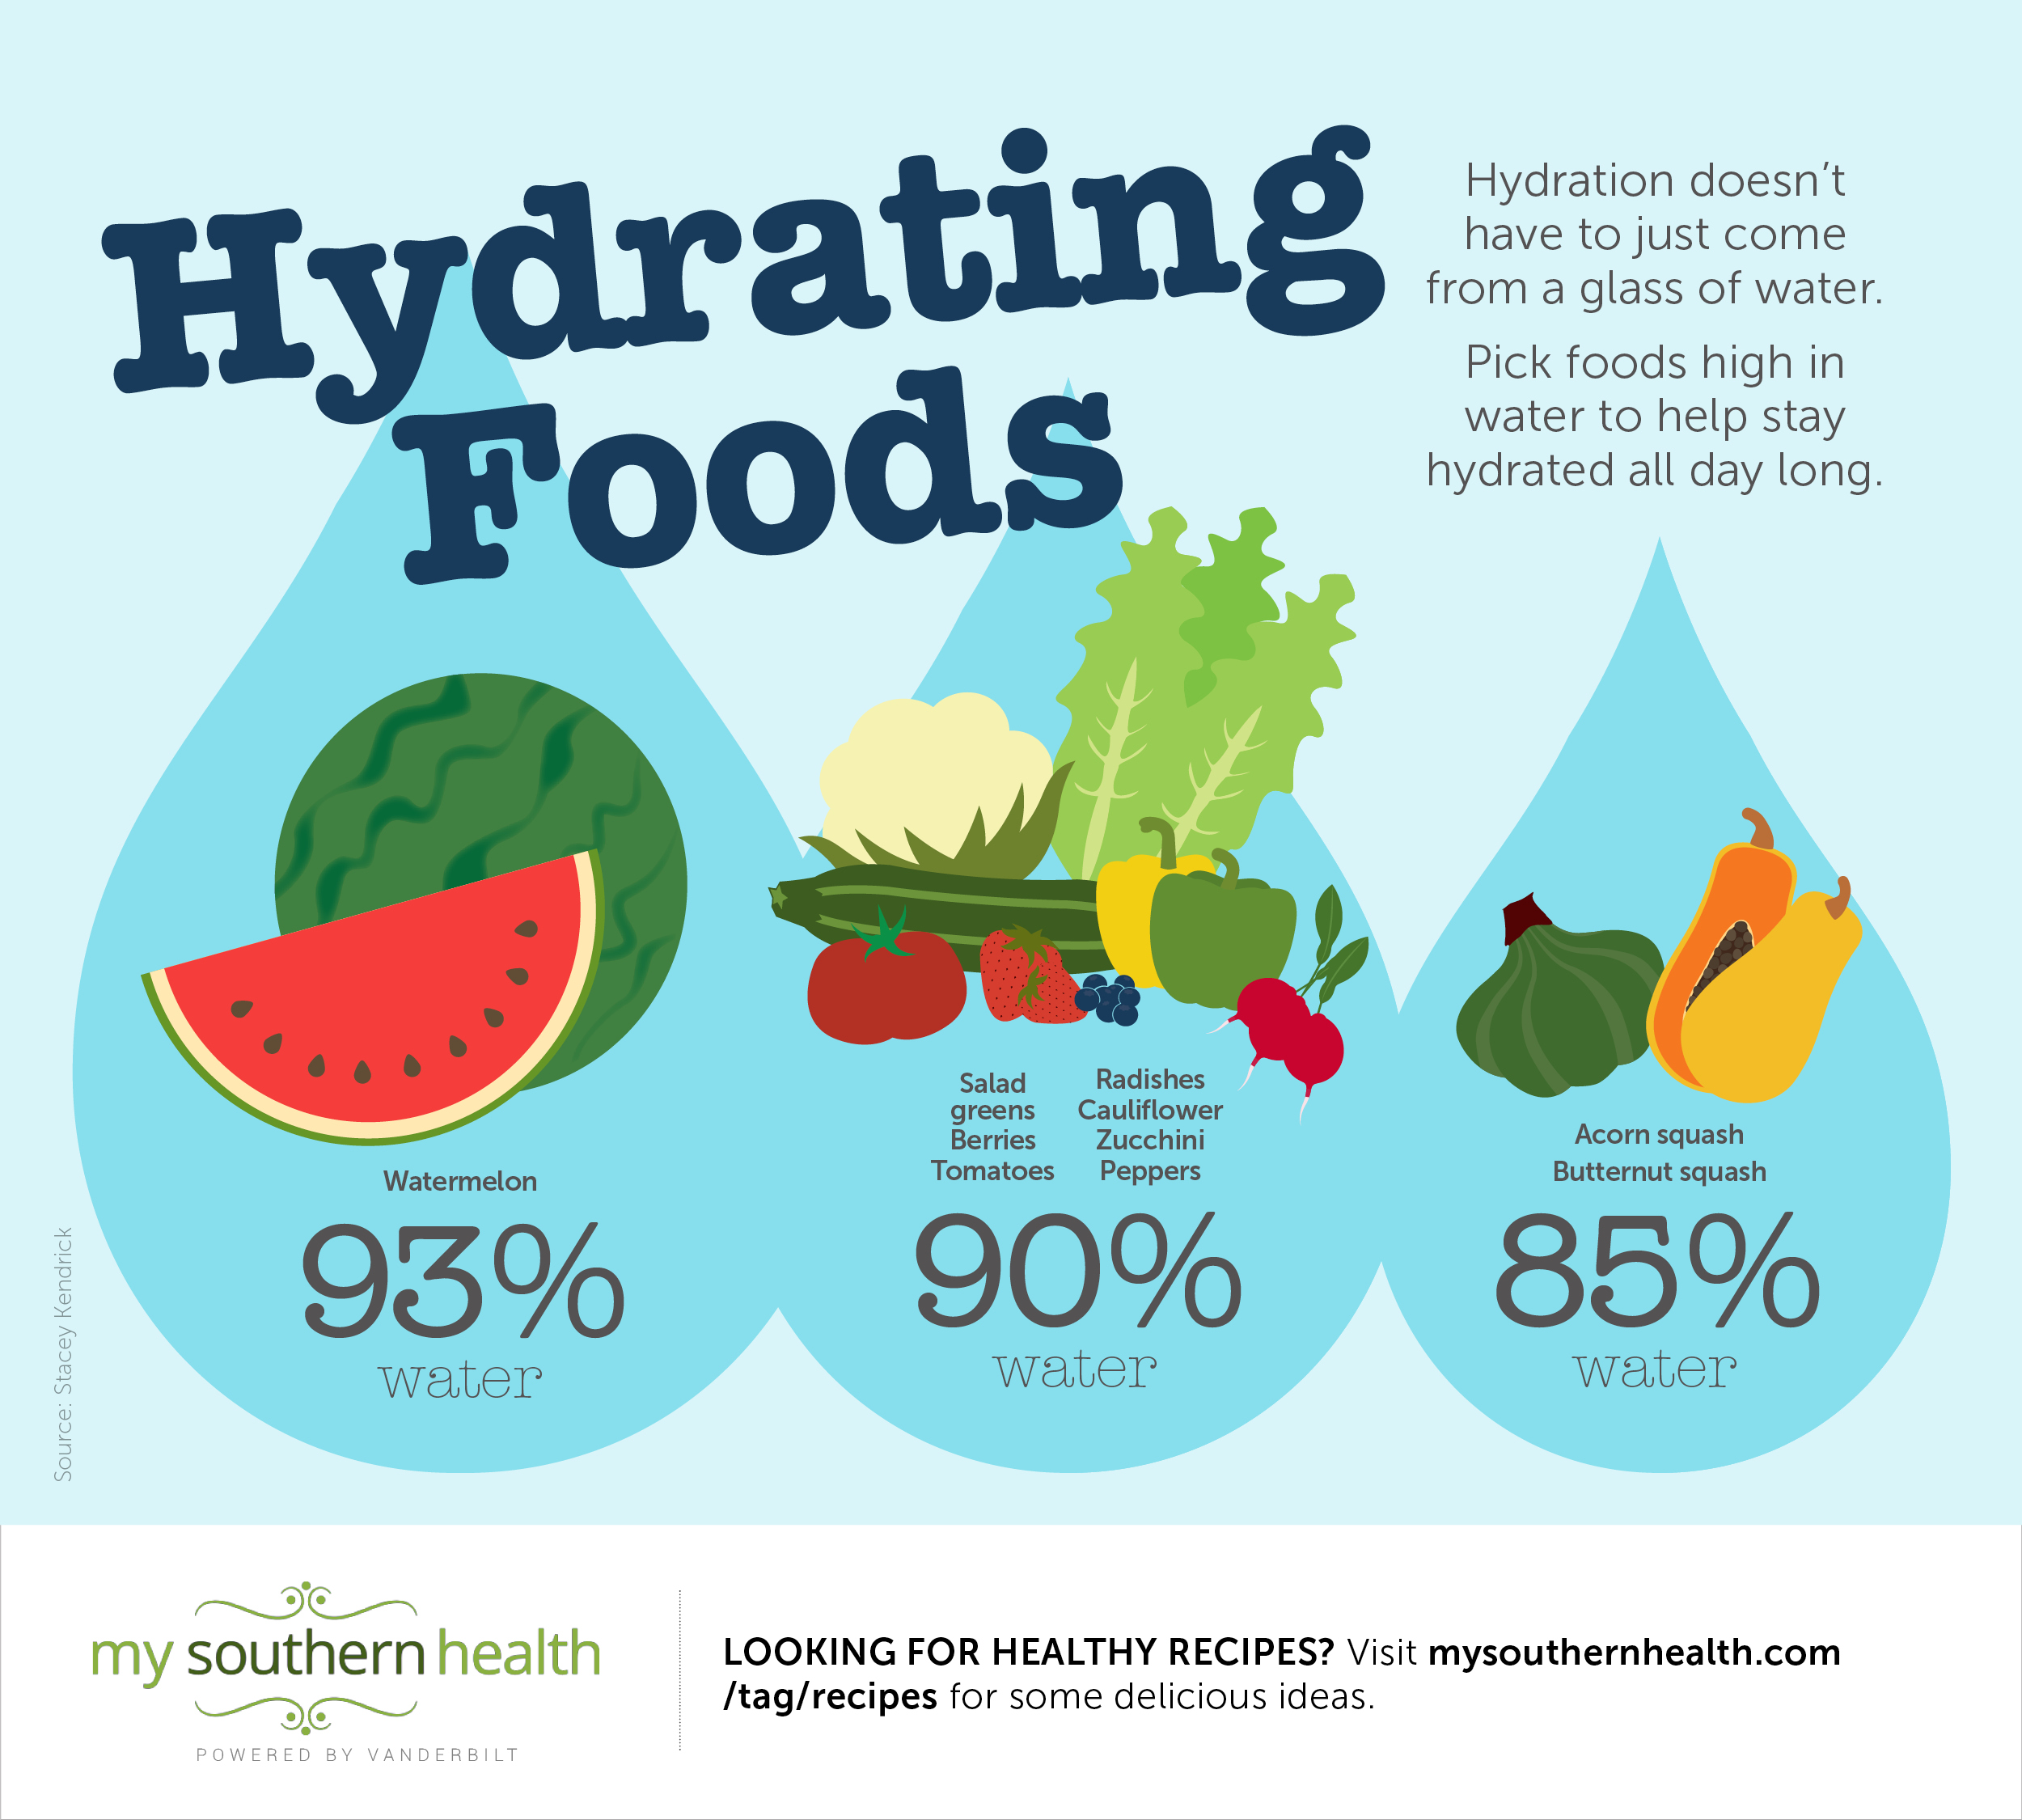 03_15 Hydrating Foods Info